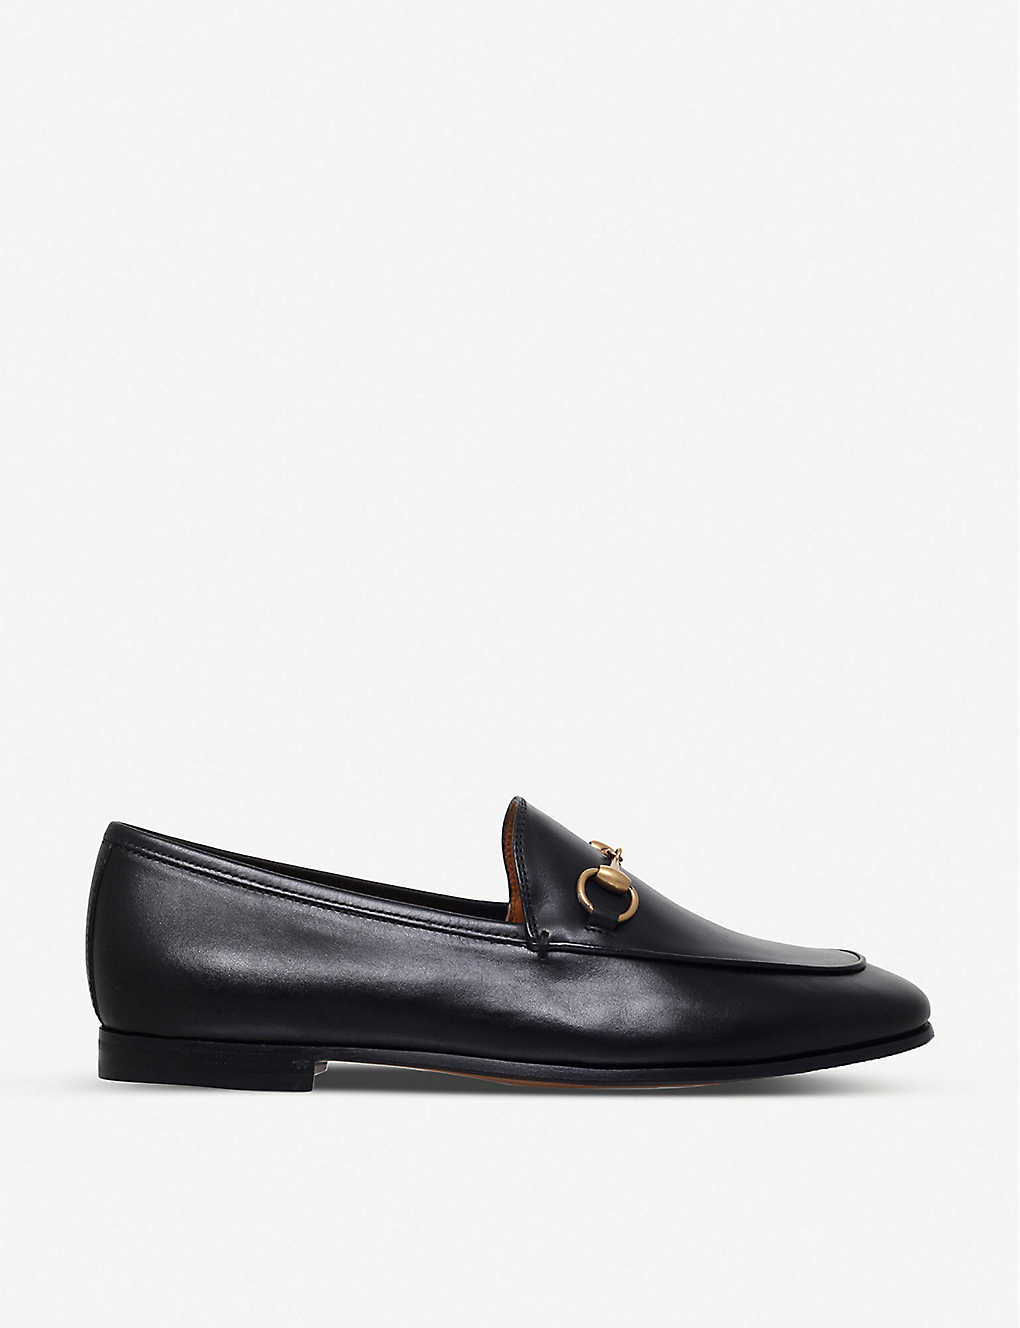 41df6ec6524 Jordaan leather loafers - Black ...